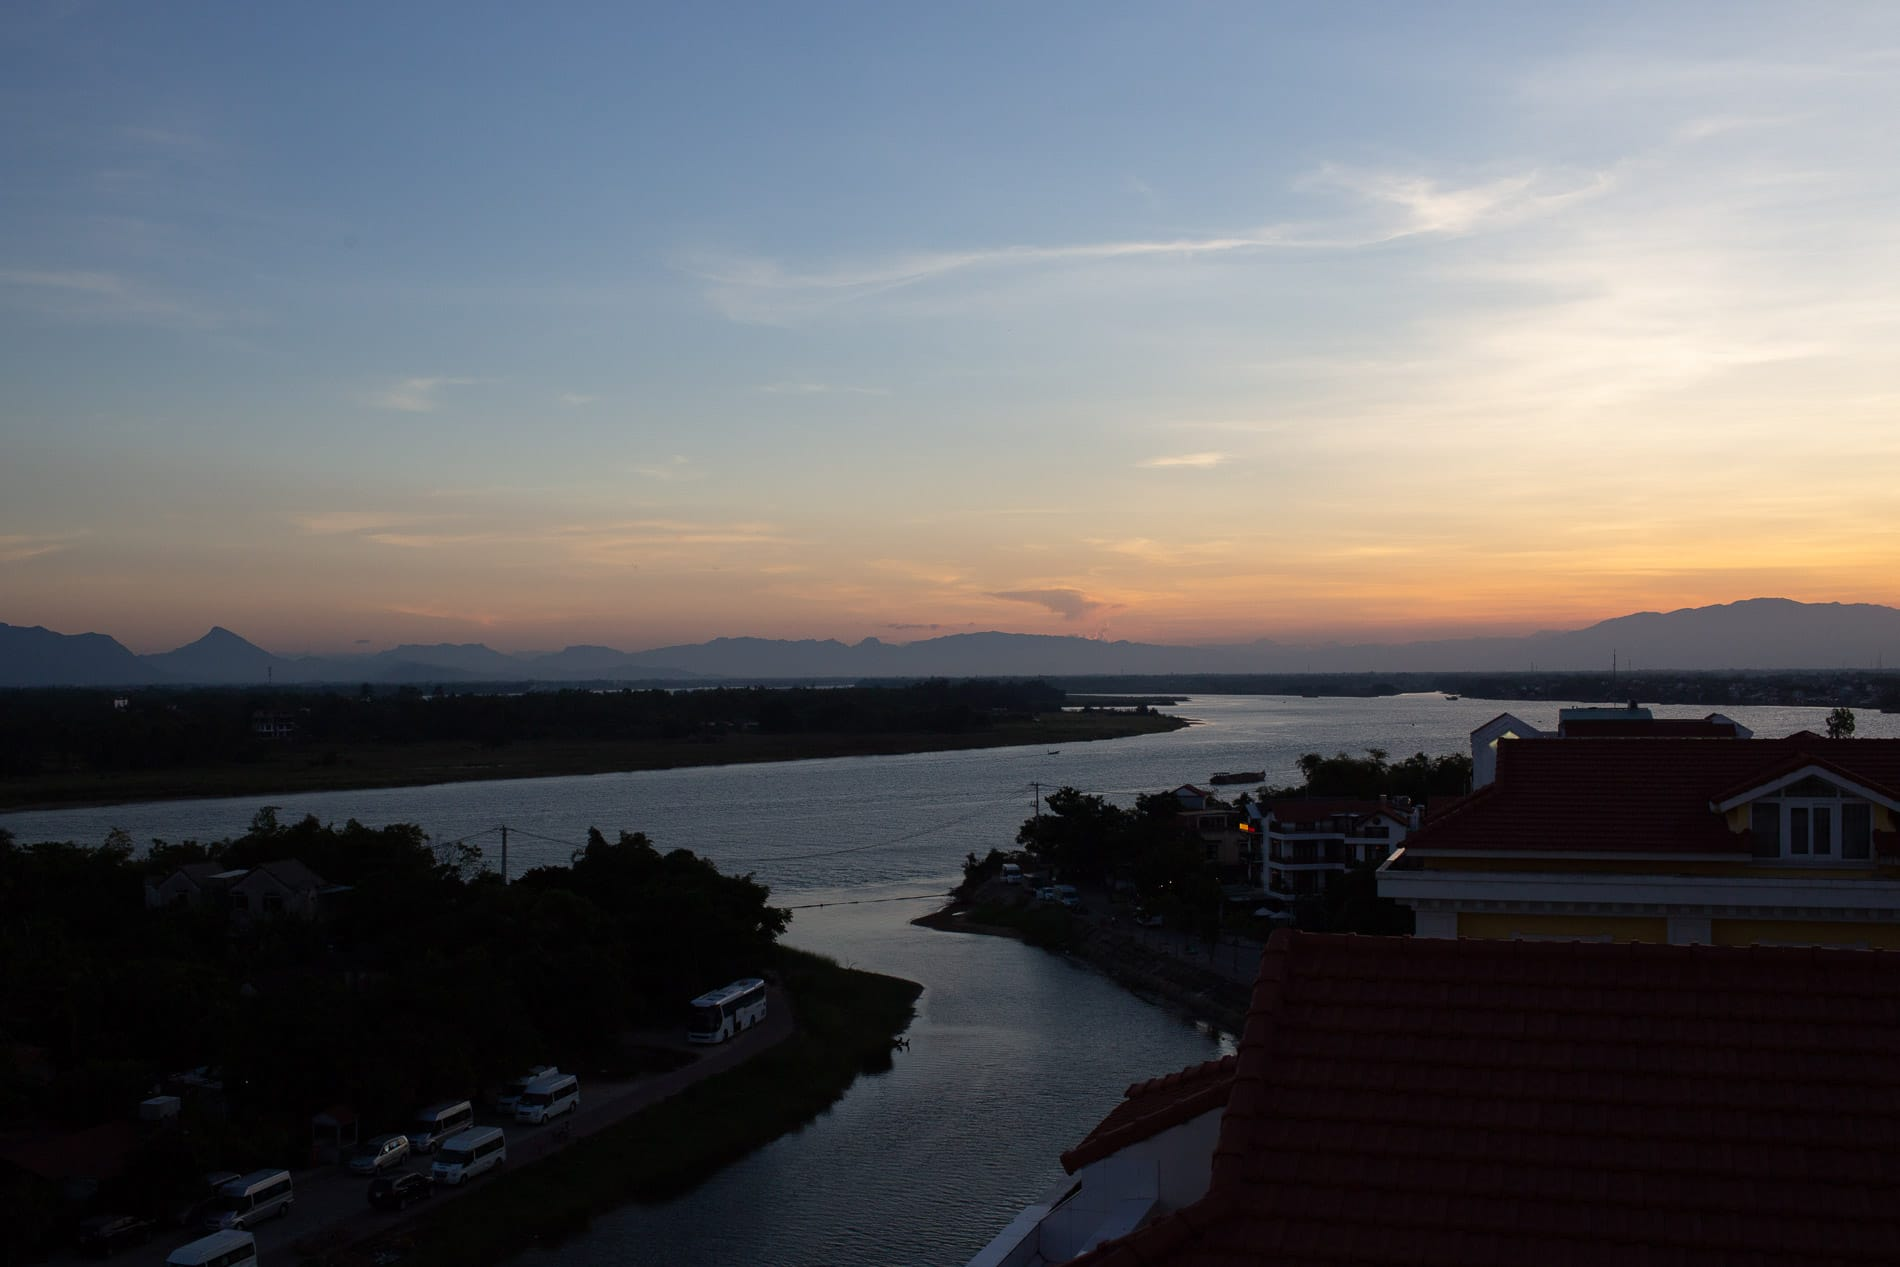 Sunset over the Thu Bon River